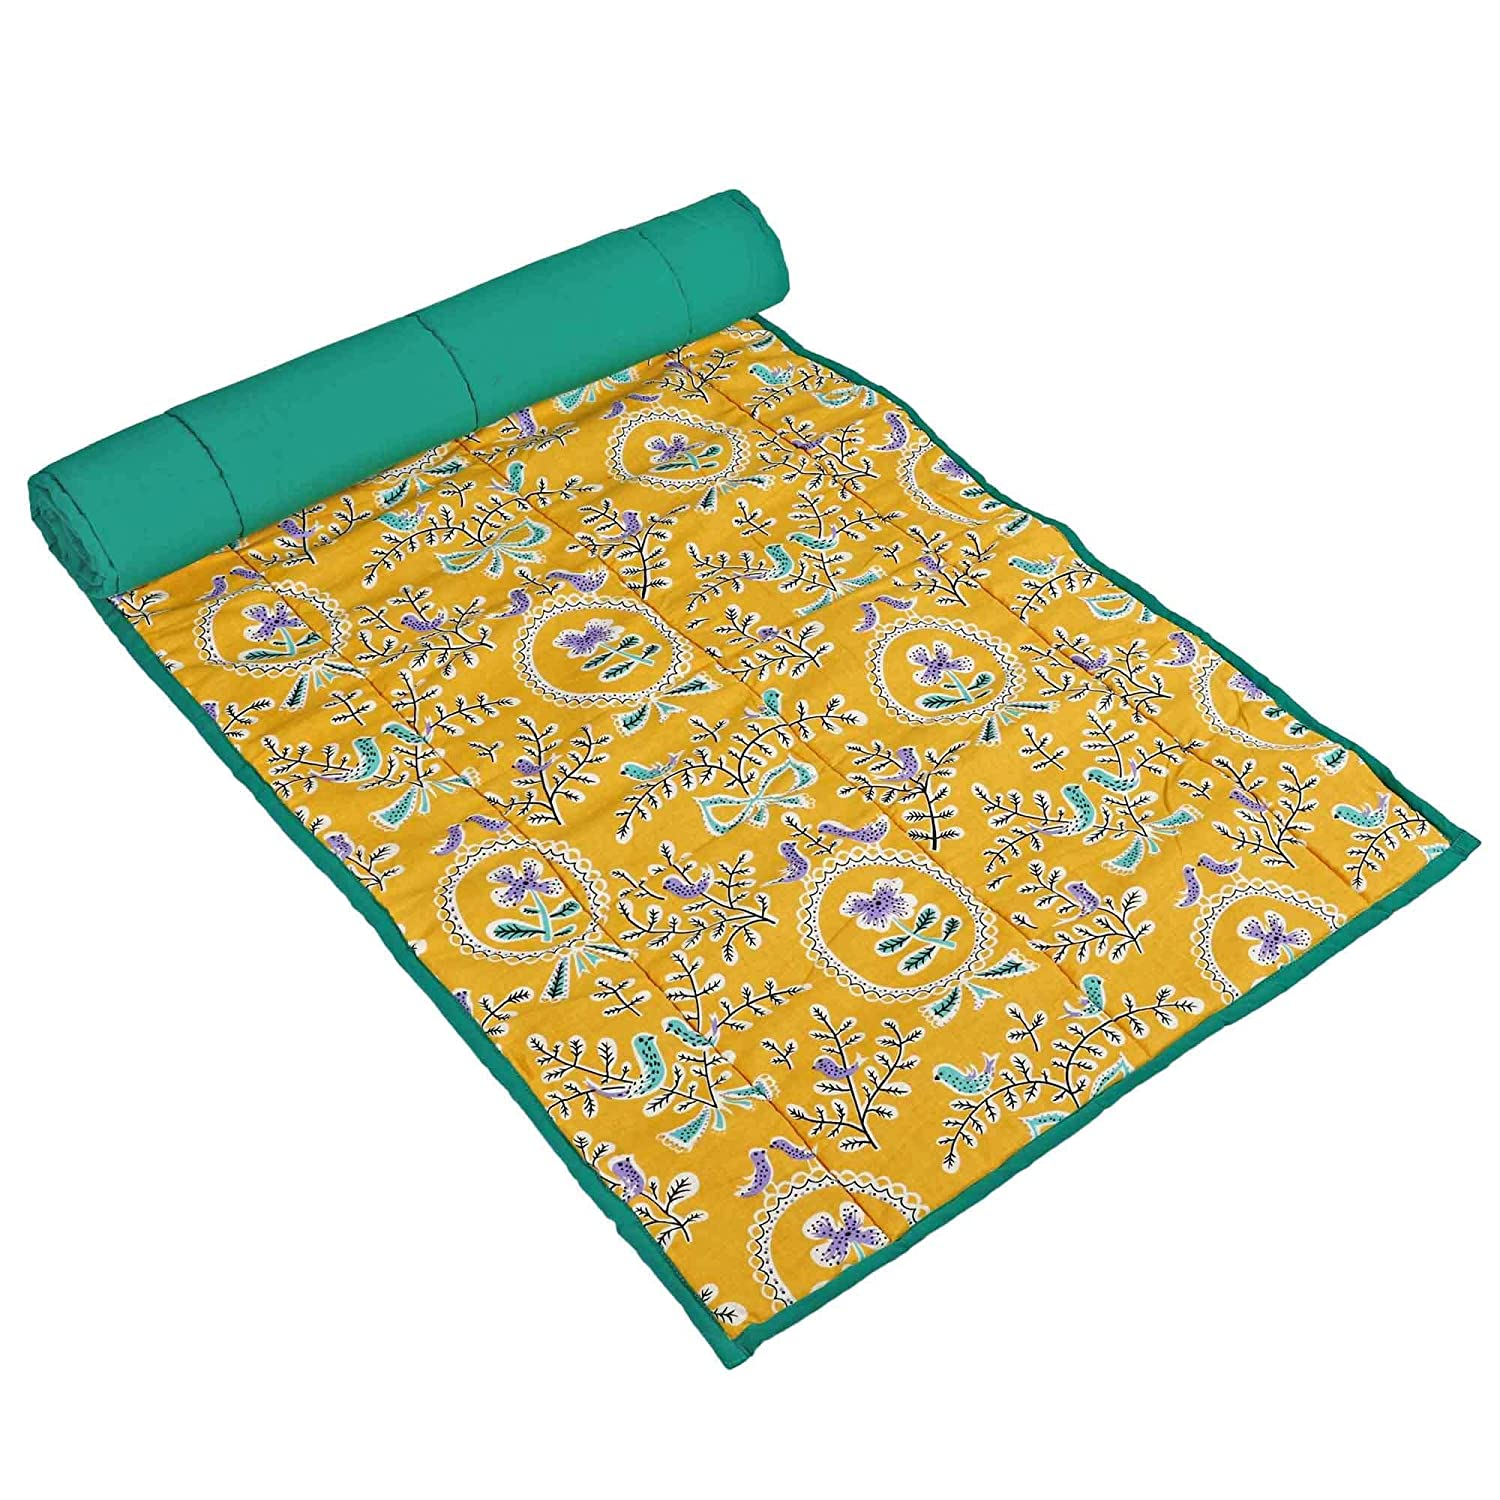 p yoga rug throw mat prayer carpet fullxfull mats quilt dhurry meditation play cotton indian baby il